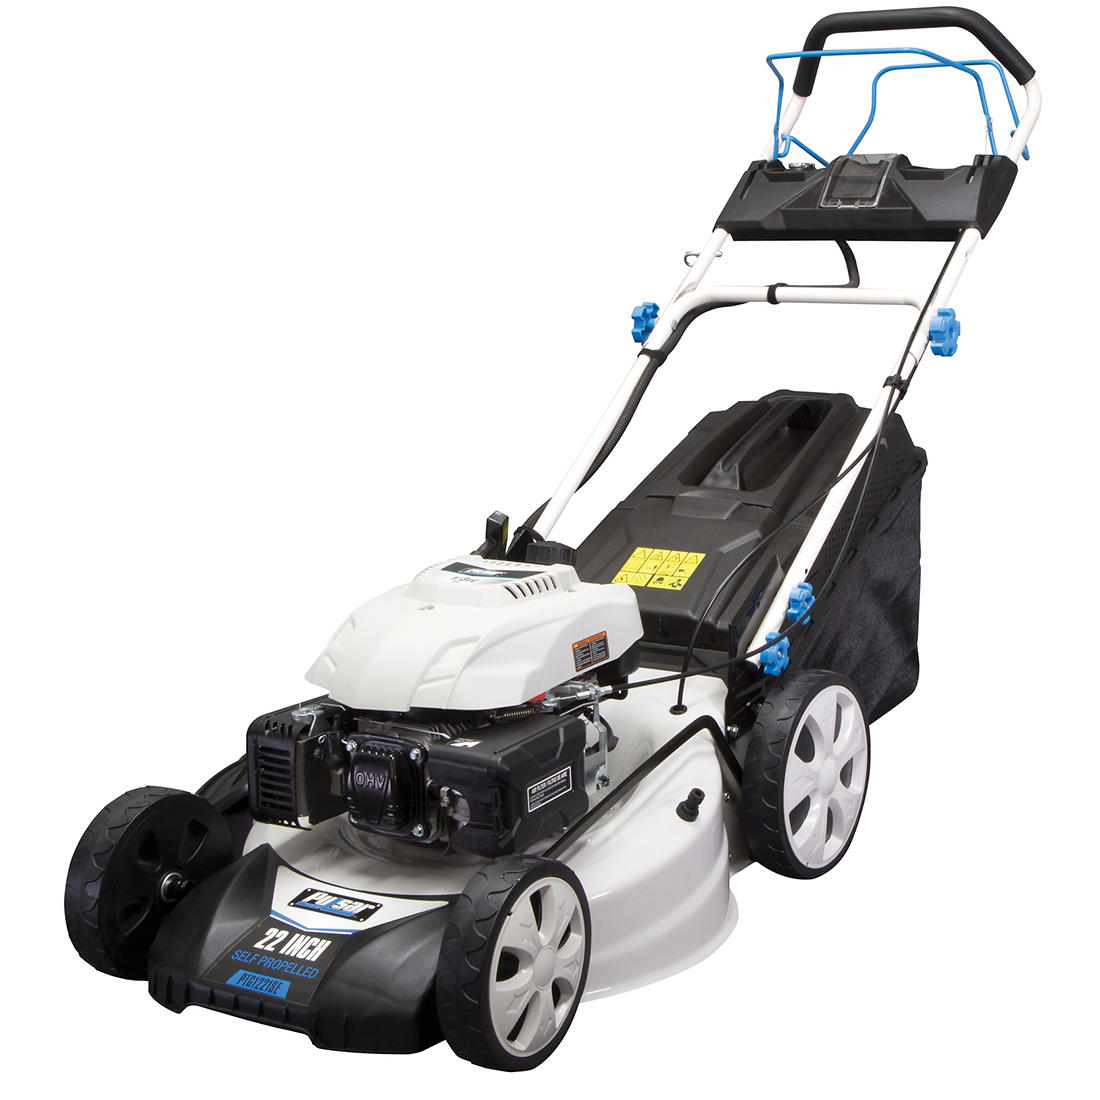 Pulsar 22 Deck Size Electric Start Gas Self Propelled Lawn Mower